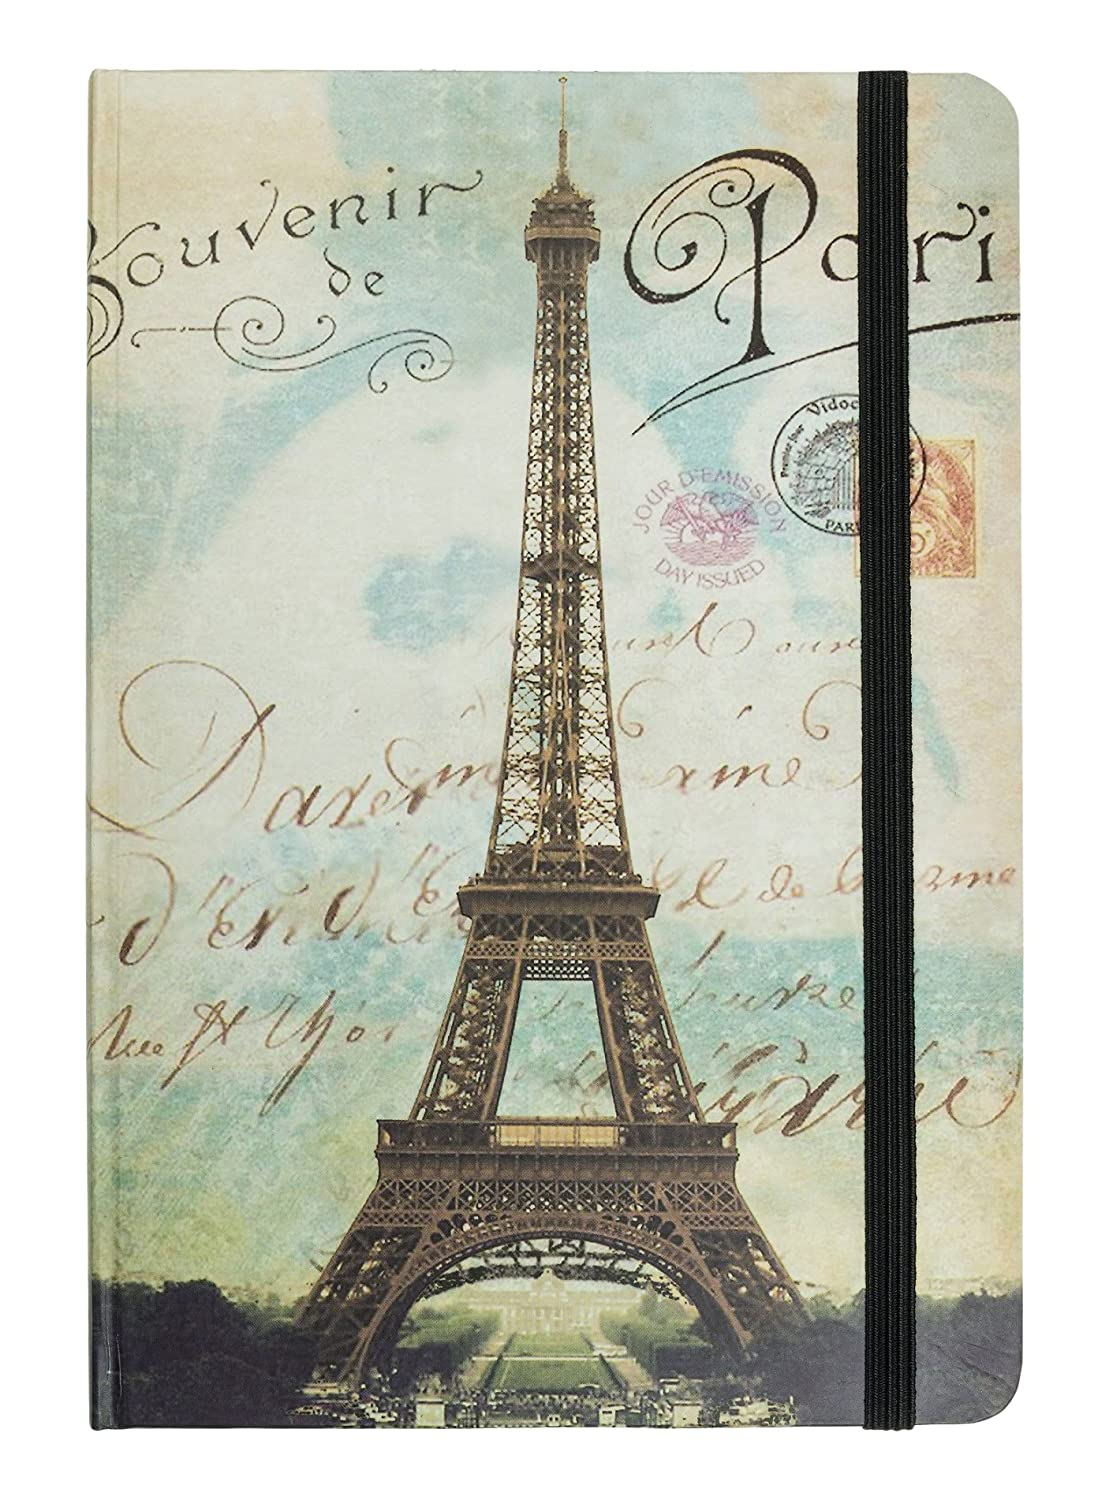 TSI 63595-3 notebook with 192 pages, size 135 x 200 mm, lined, motif